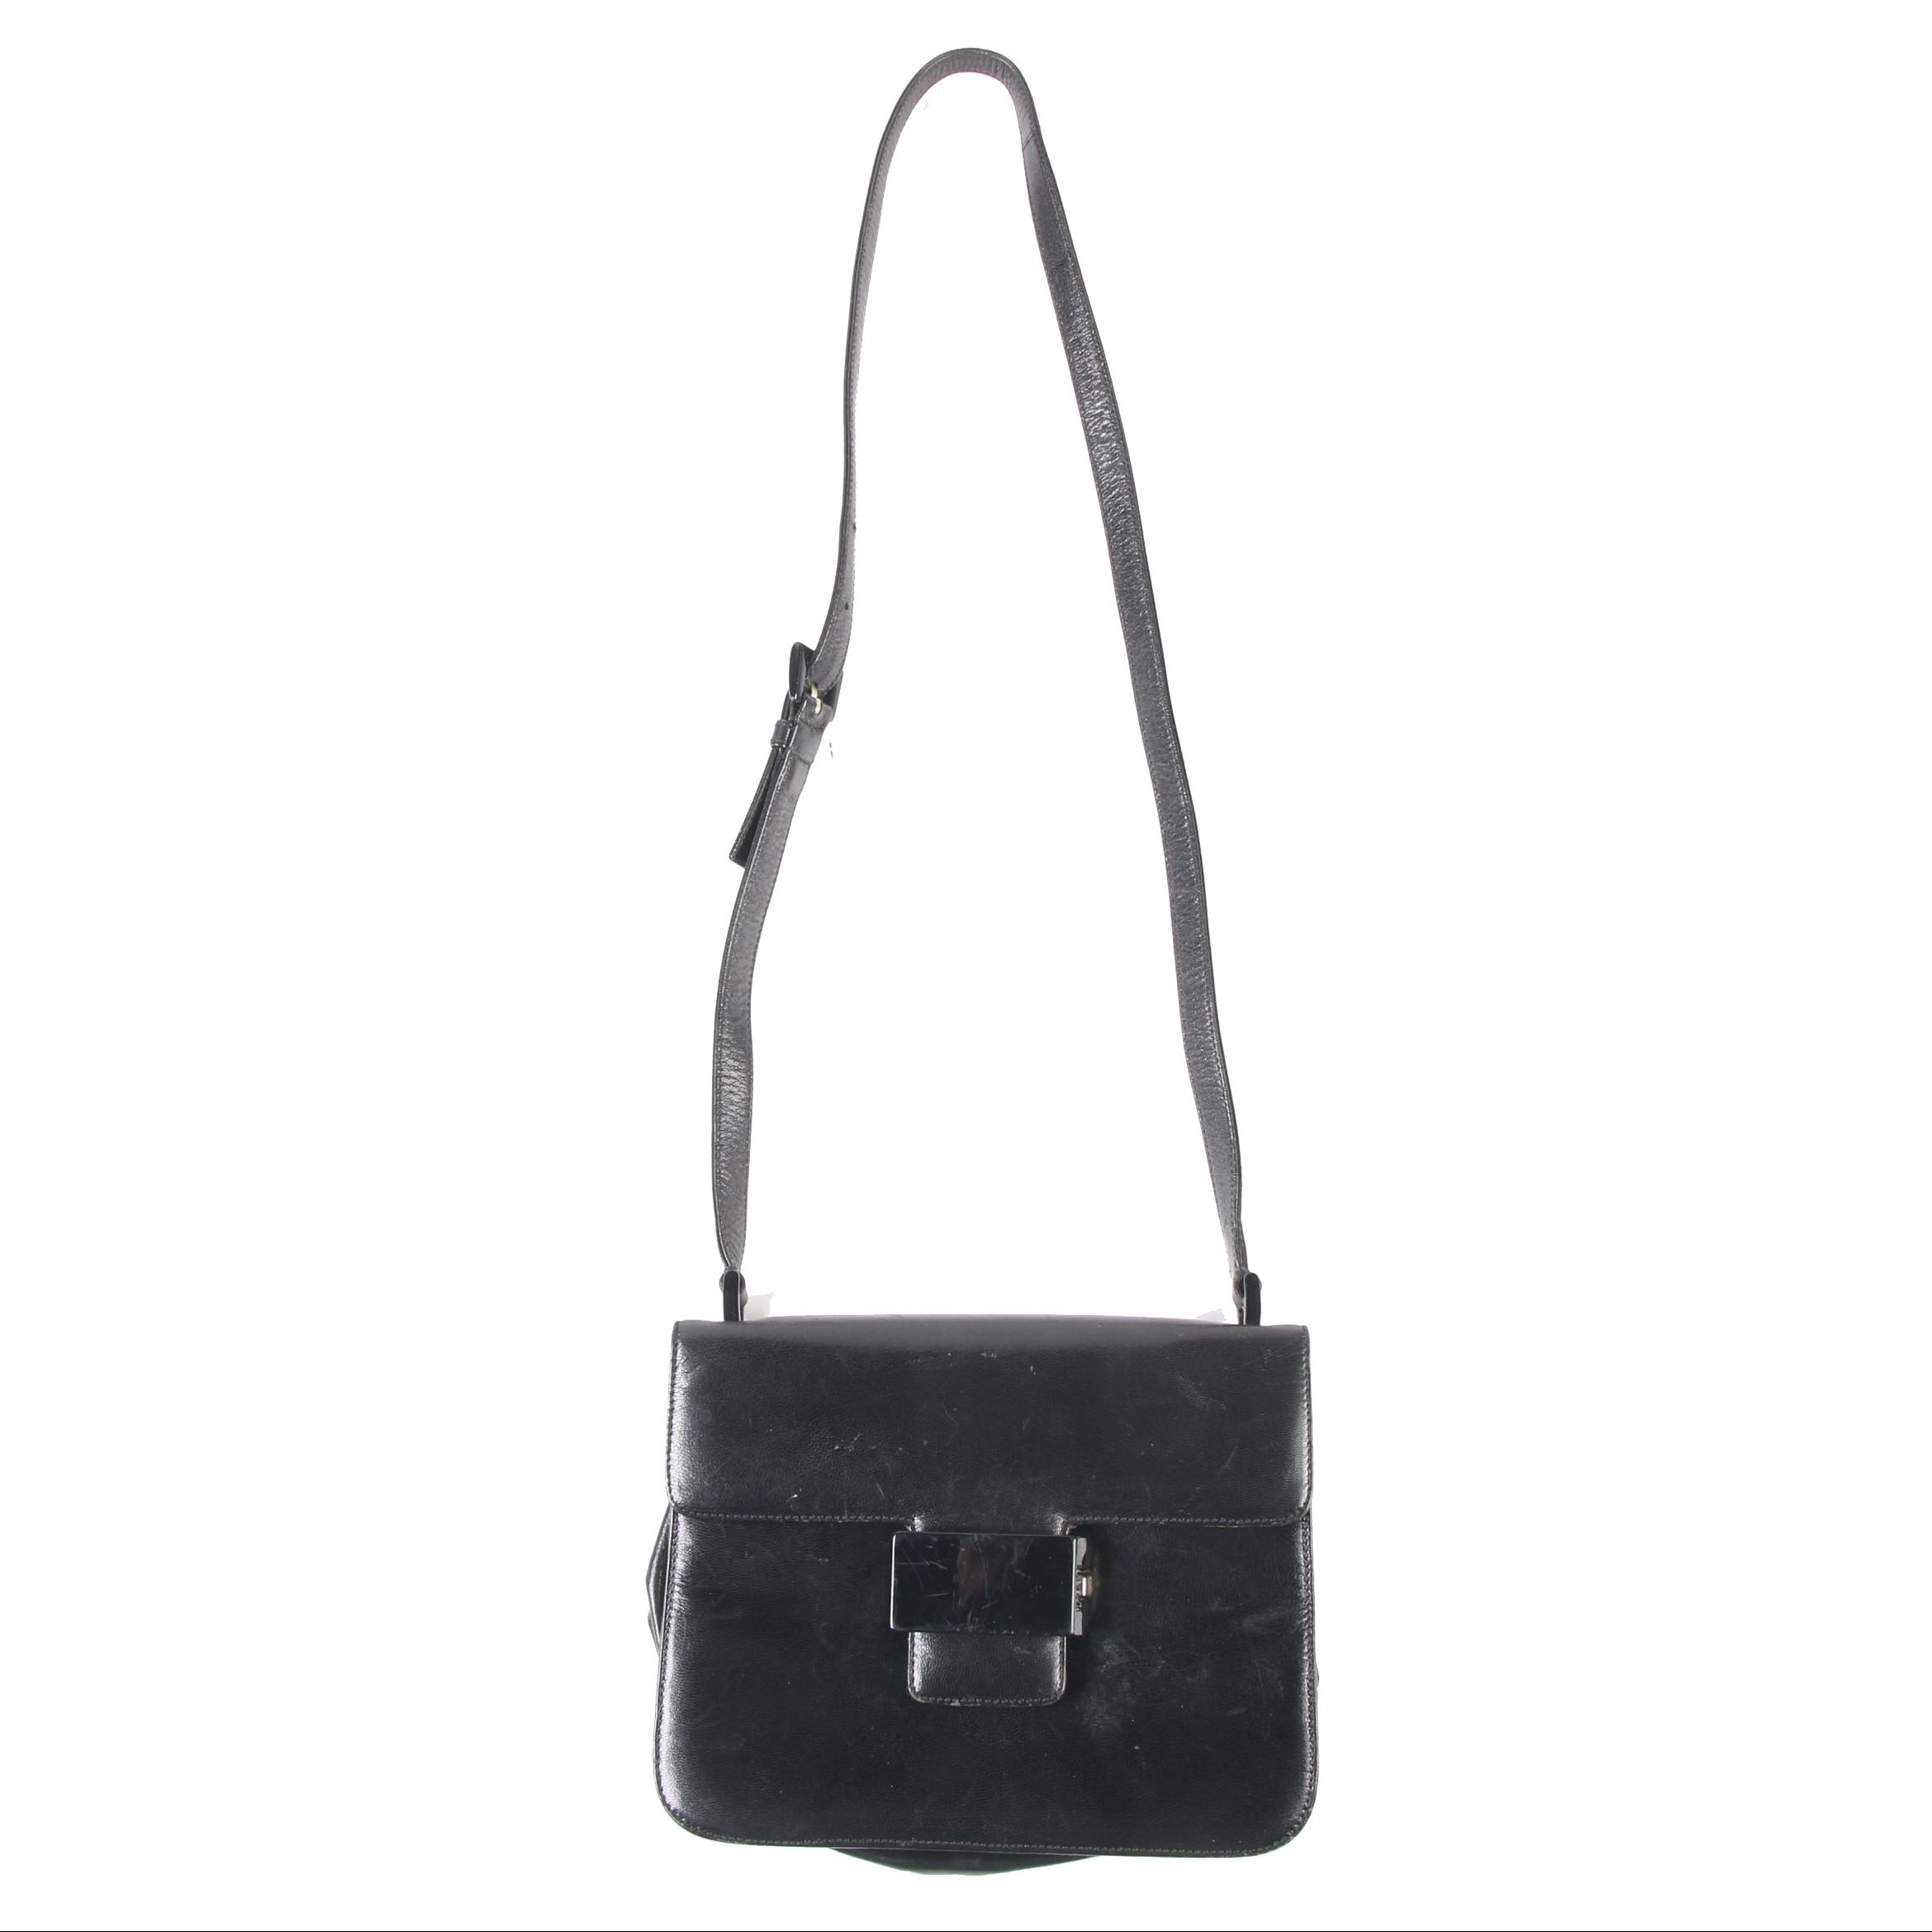 Prada Flap Front Black Leather Crossbody Shoulder Bag